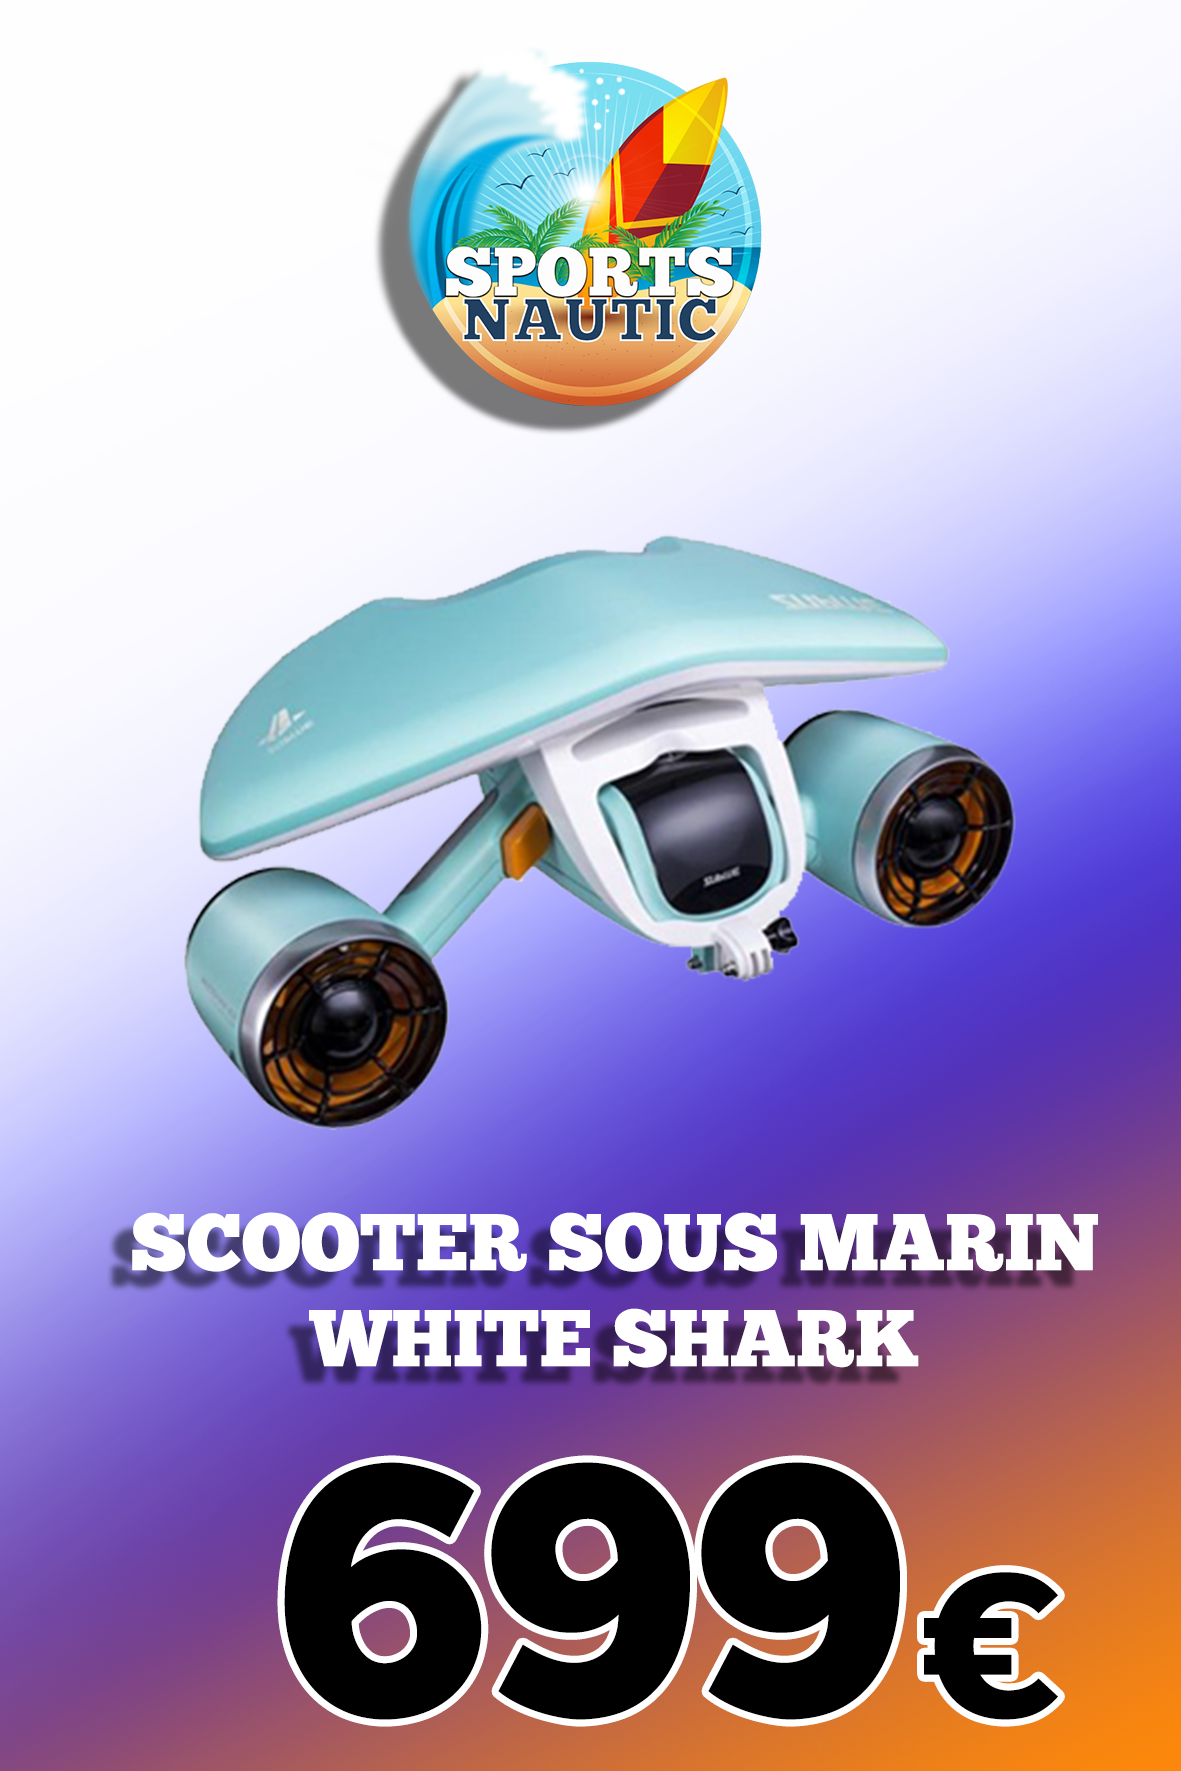 Scooter sous marin White Shark